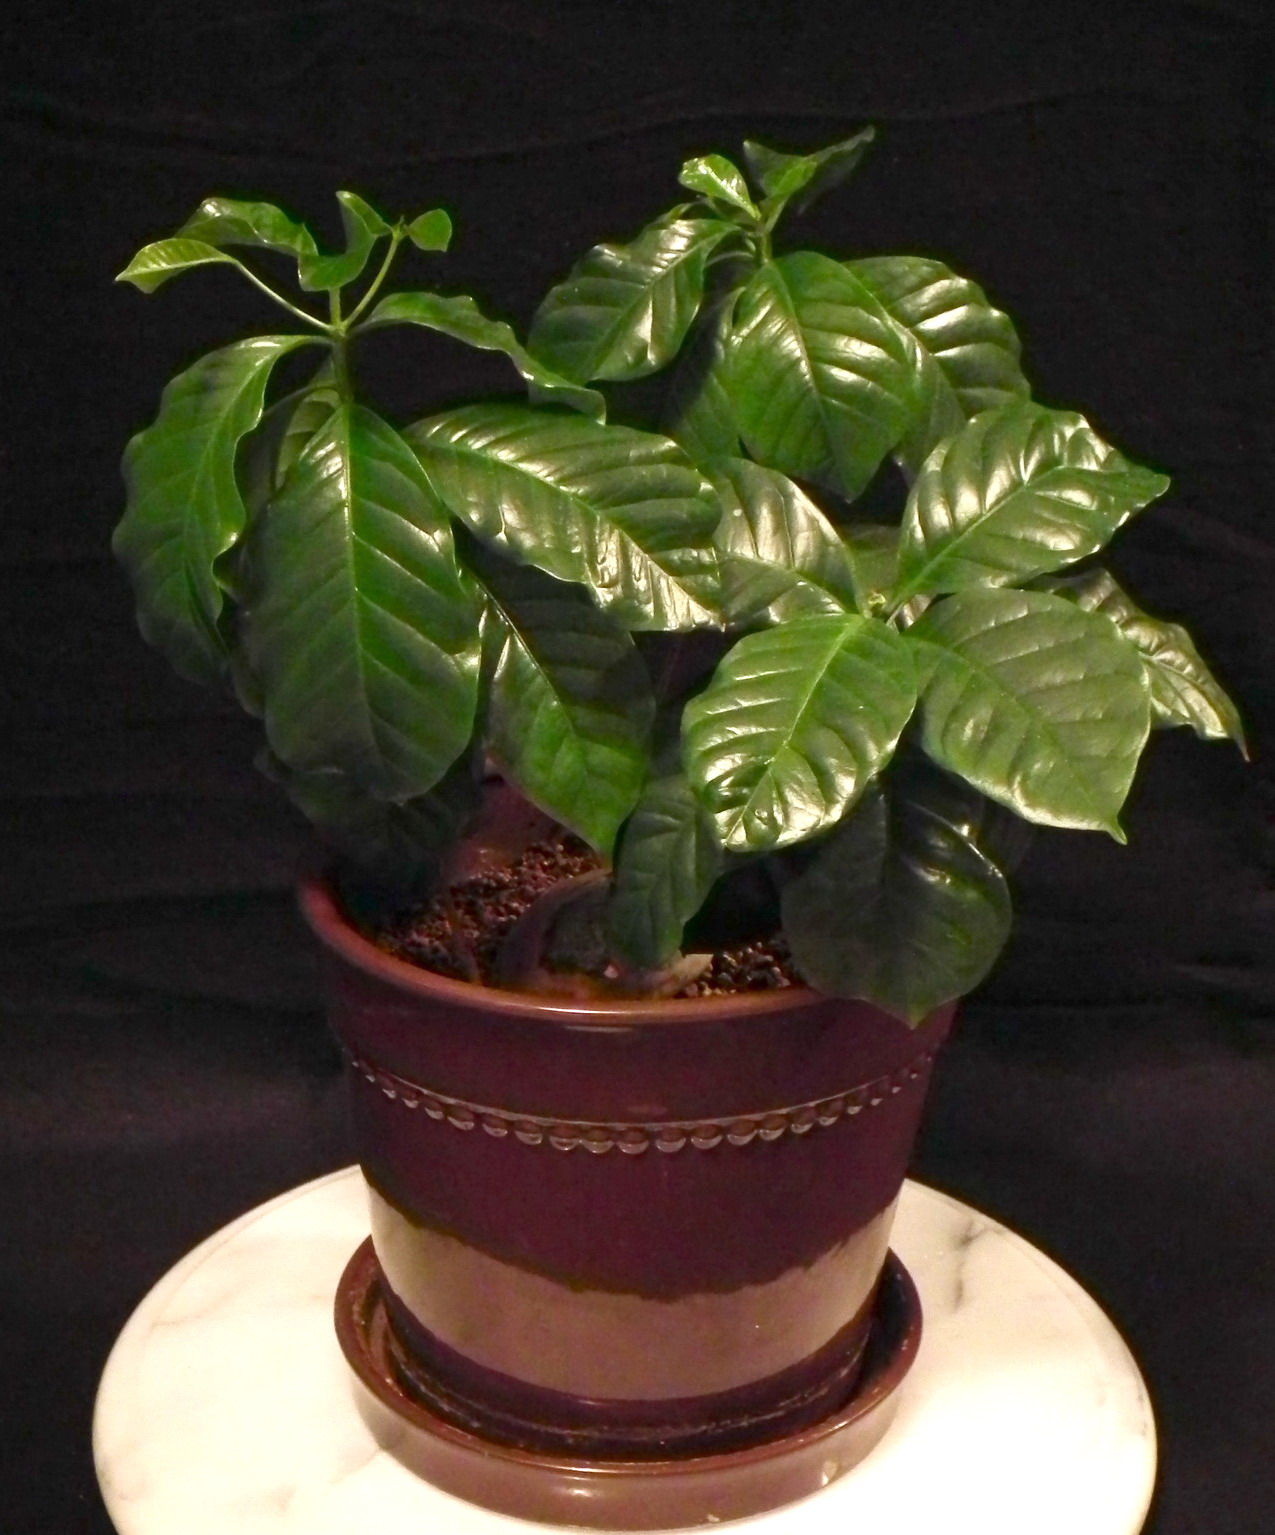 Scented Leaf Growing Coffee Plants Indoor